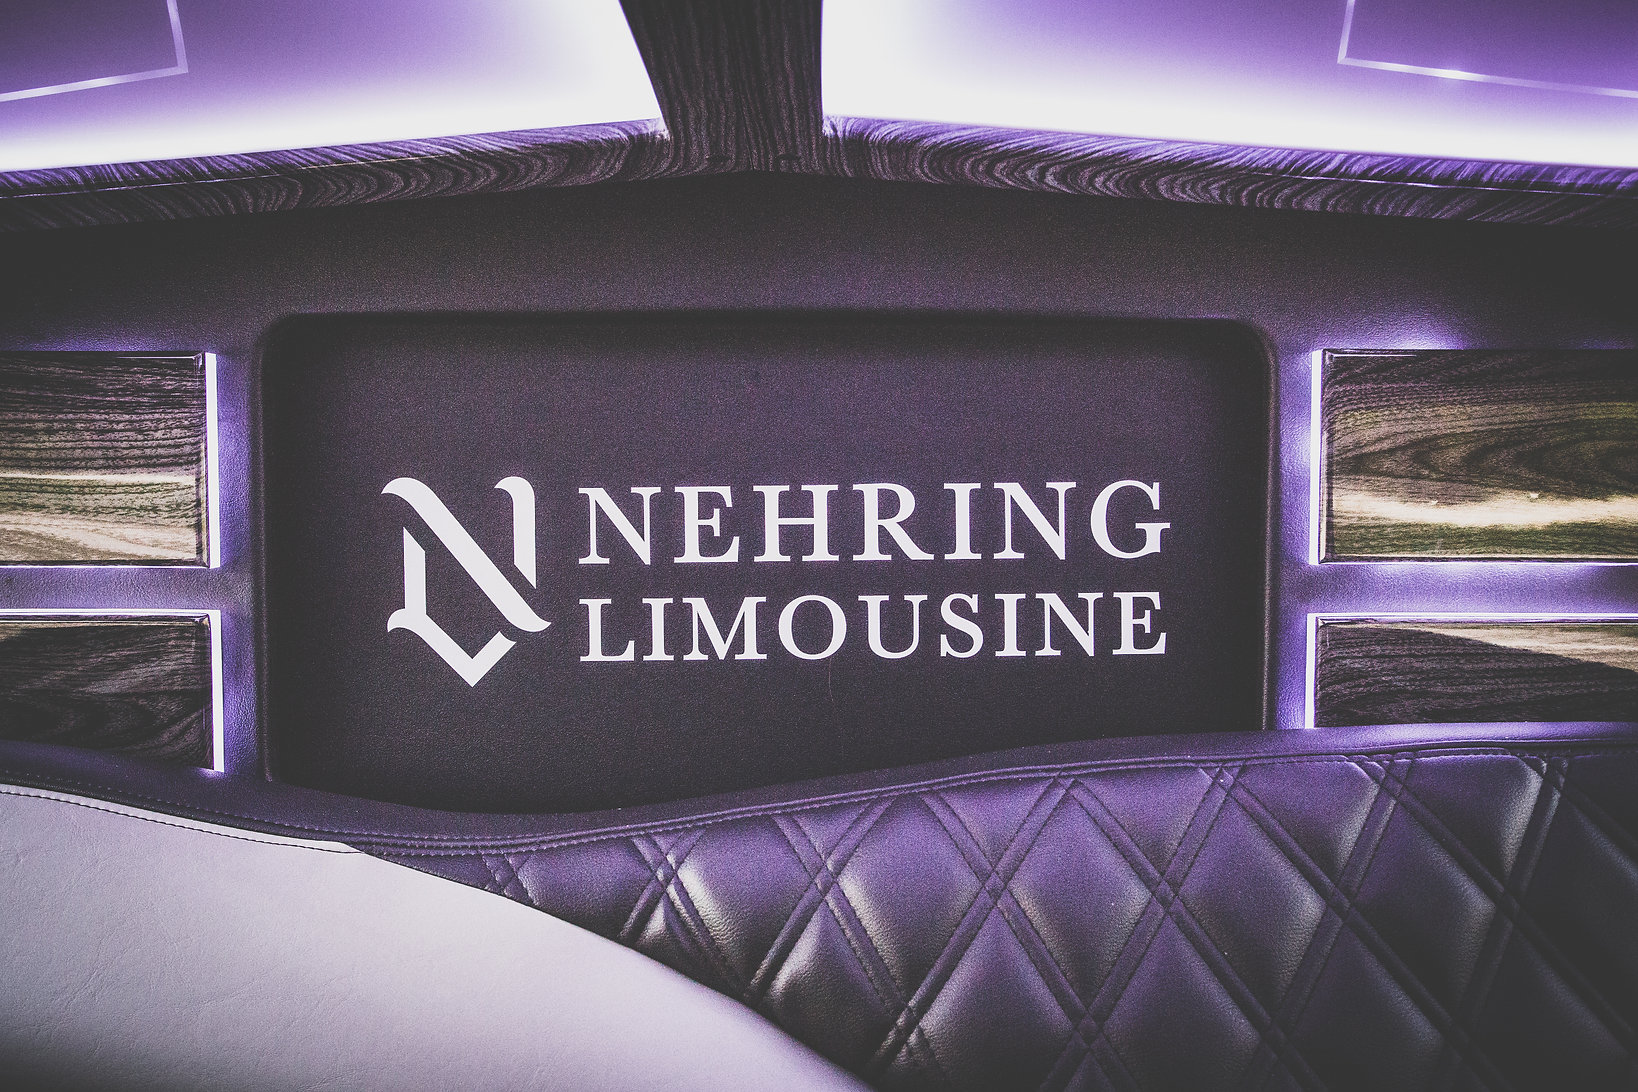 Weddinglimo service wisconsin, oshkosh appleton